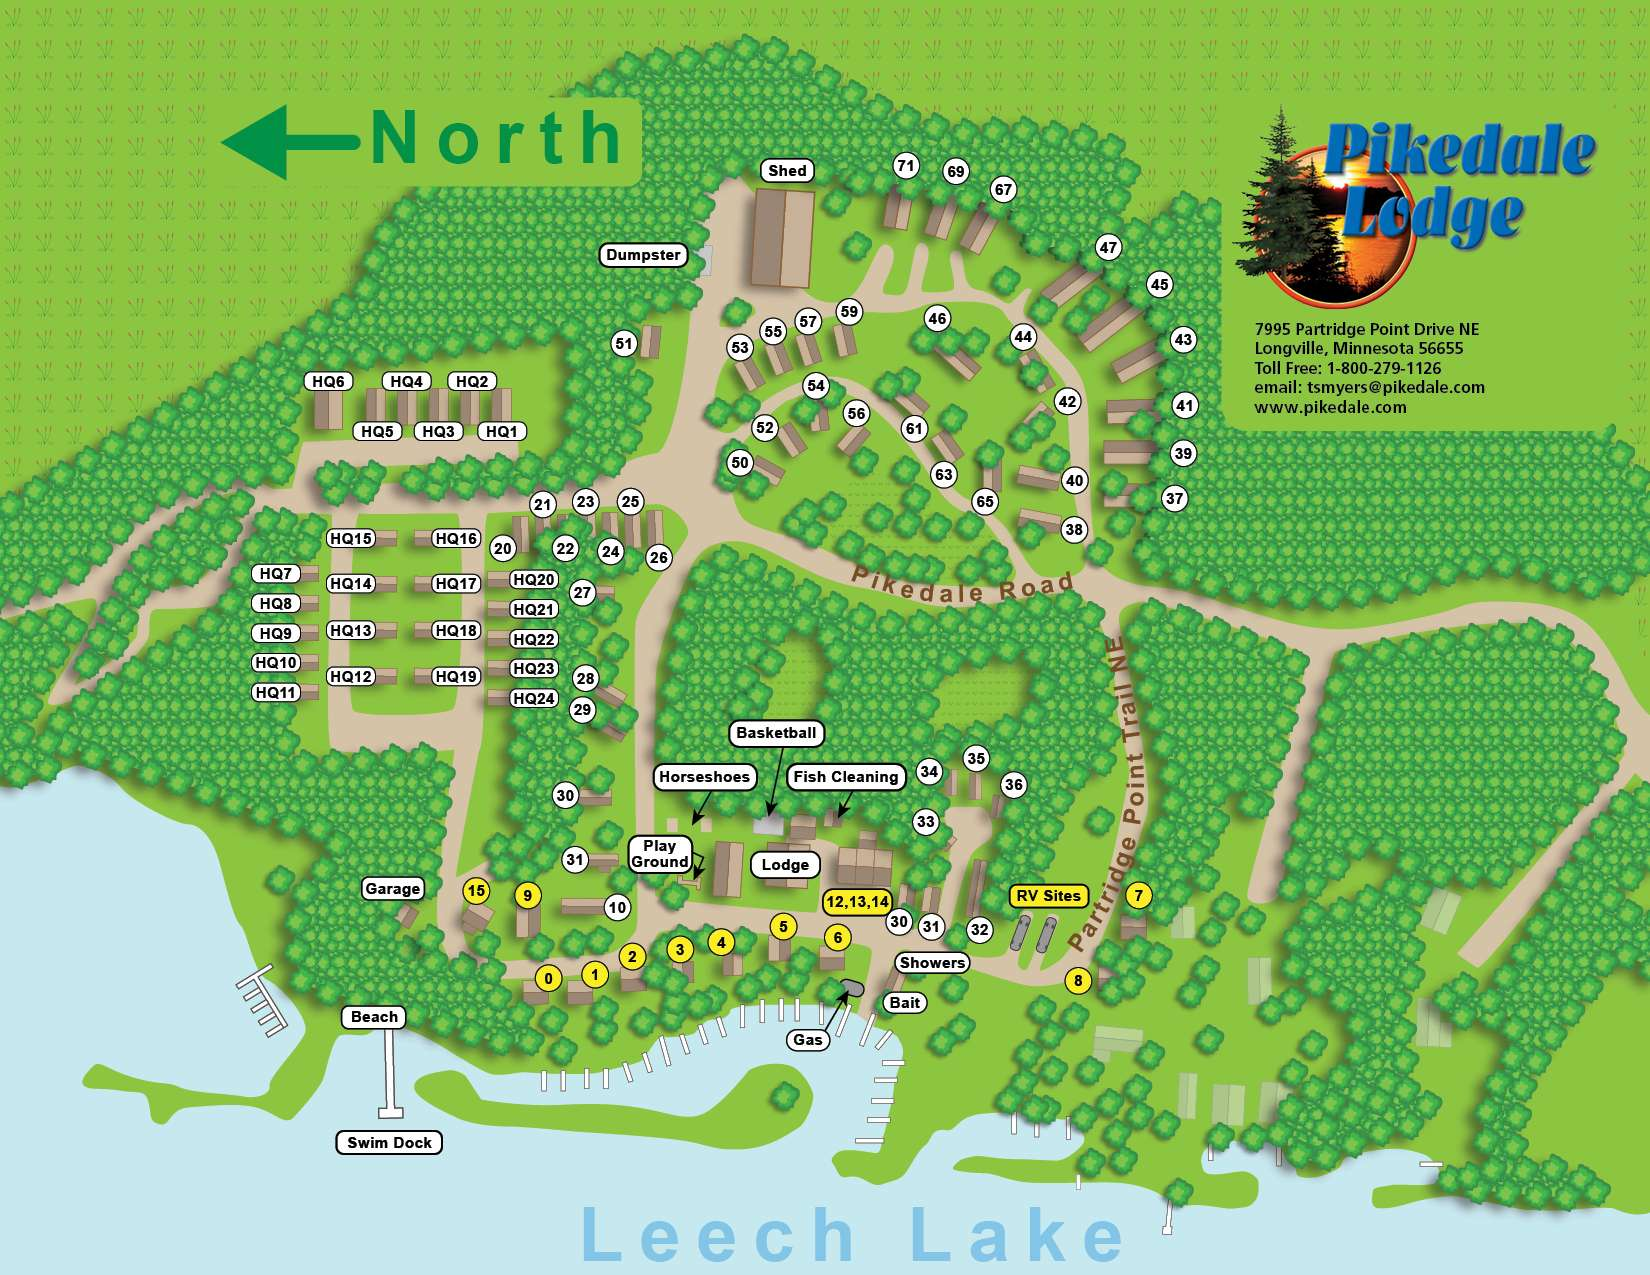 Pikedale Lodge and Resort Layout